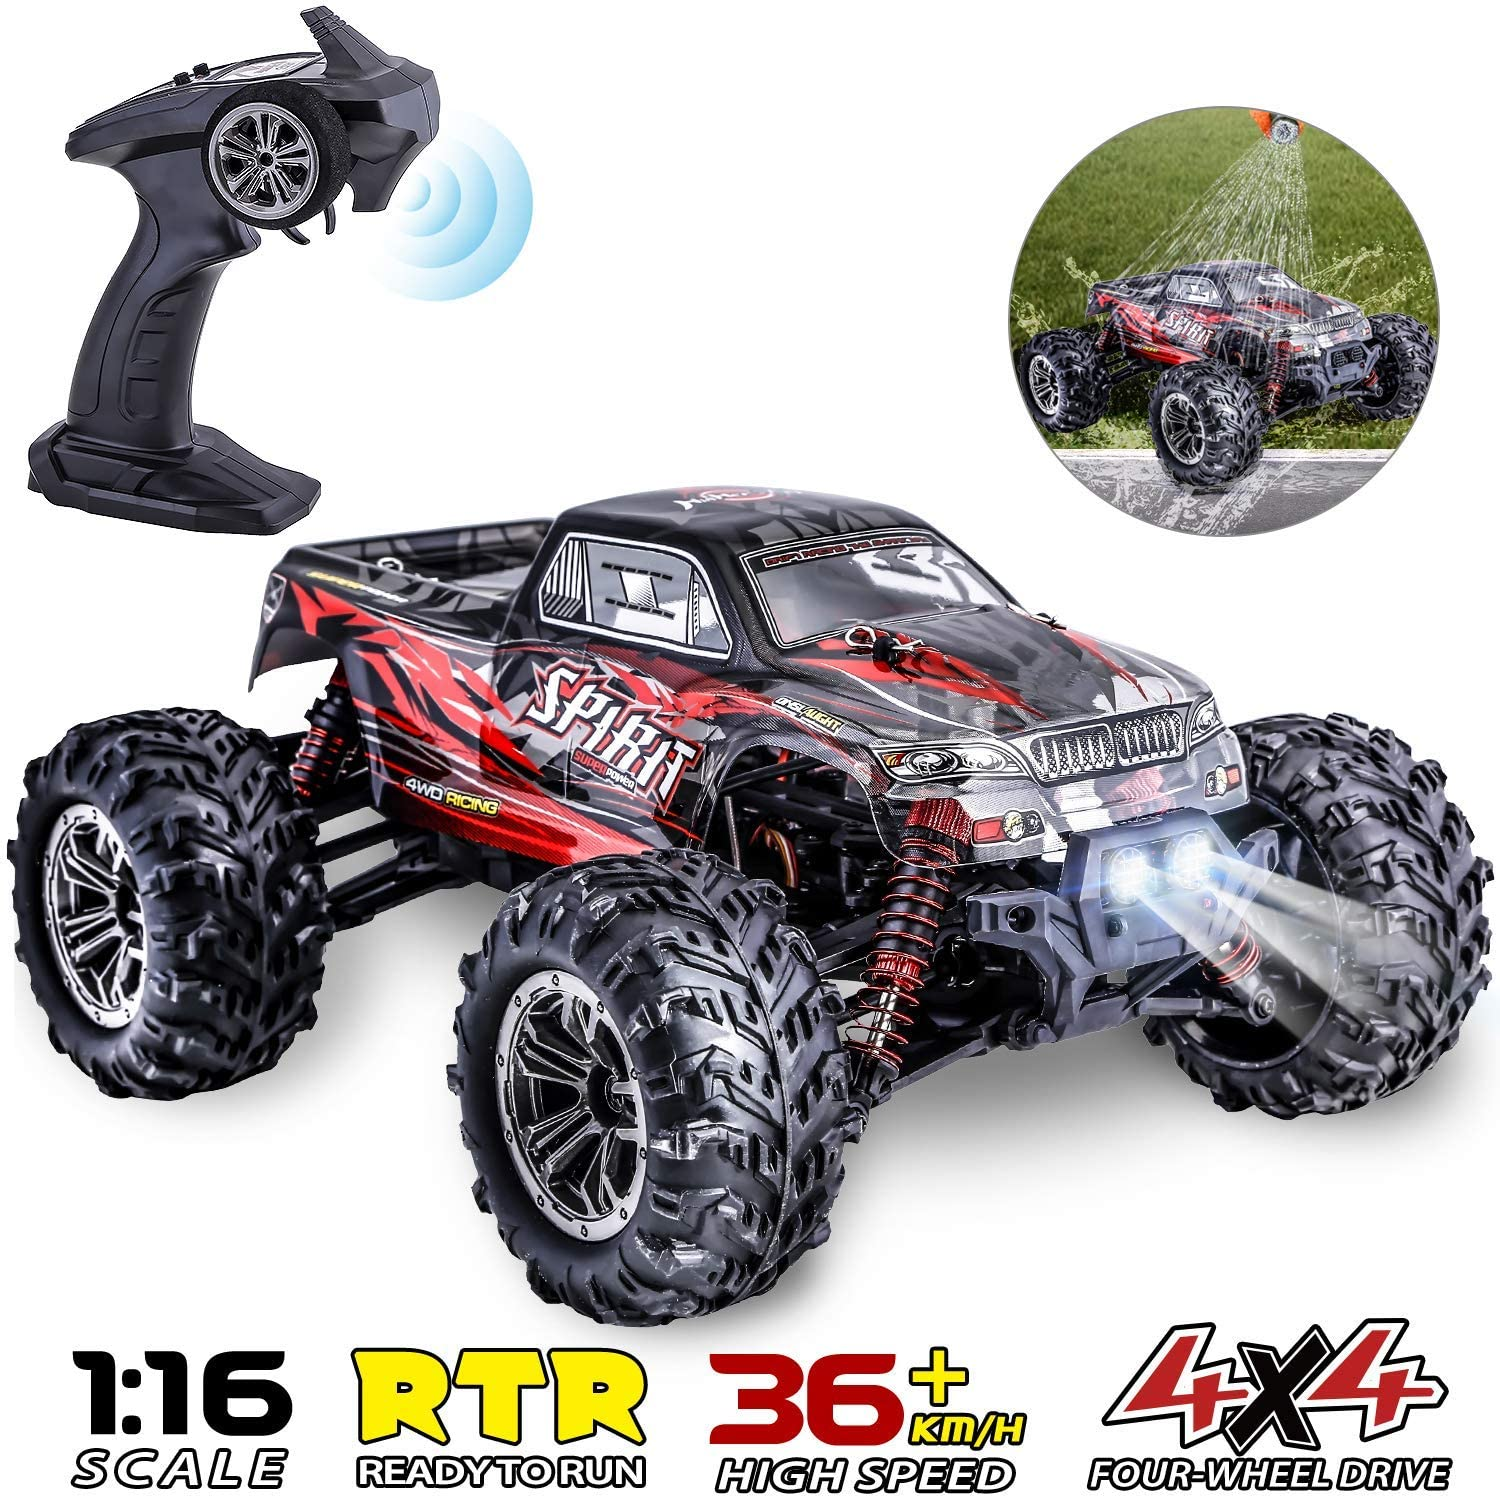 Histoye Remote Control Car IPX4 Waterproof Off Road RC Cars 1:16 // 36km/h Monster Hobby Cross-Country Buggy with Headlights(China)